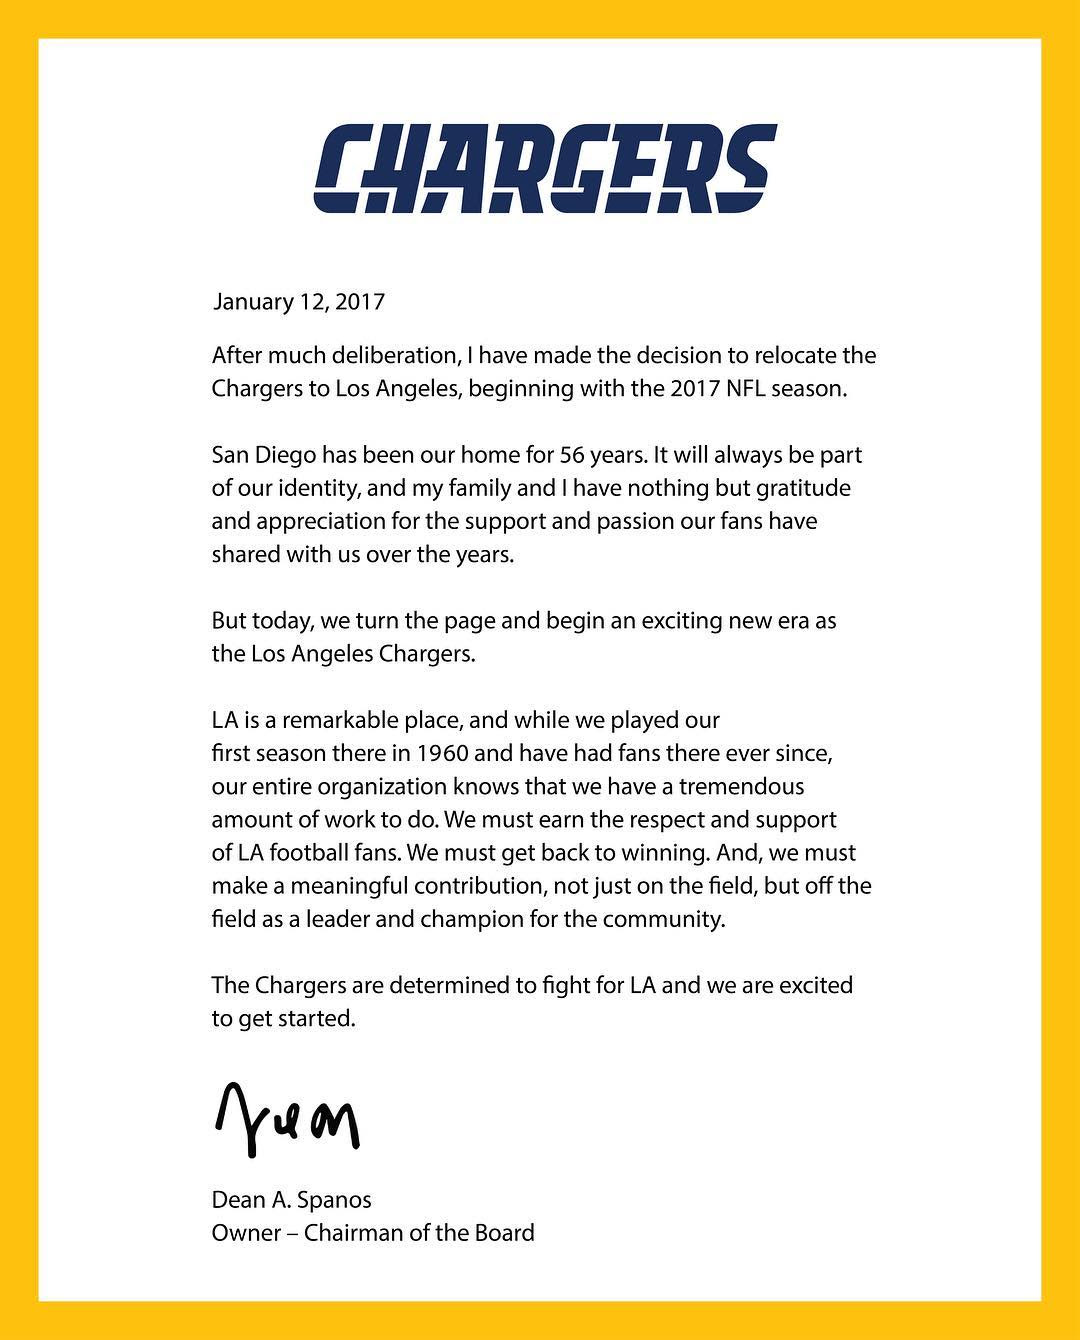 3 - A letter from Dean Spanos